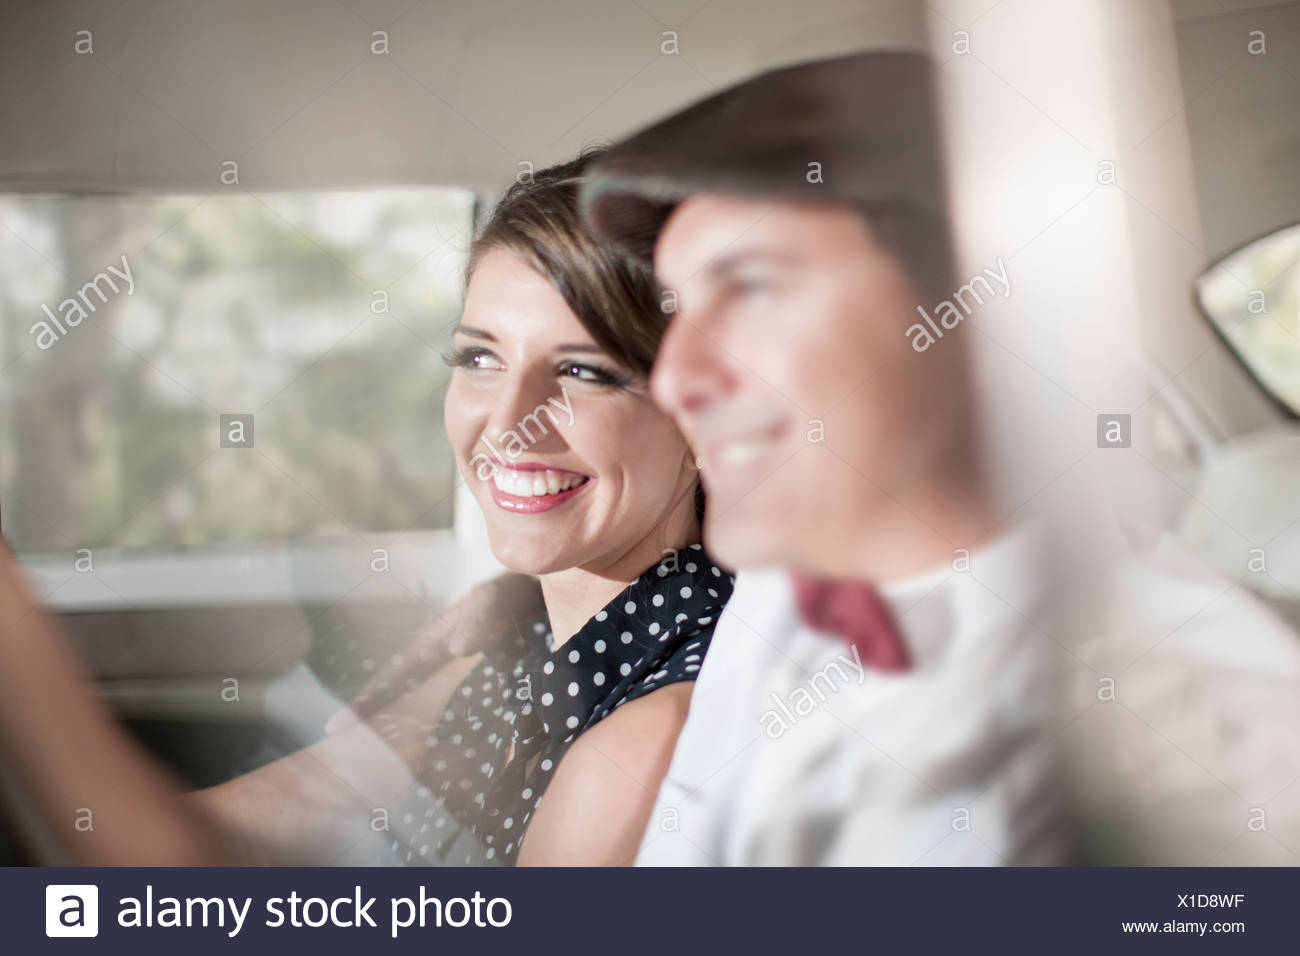 Older woman dating young man